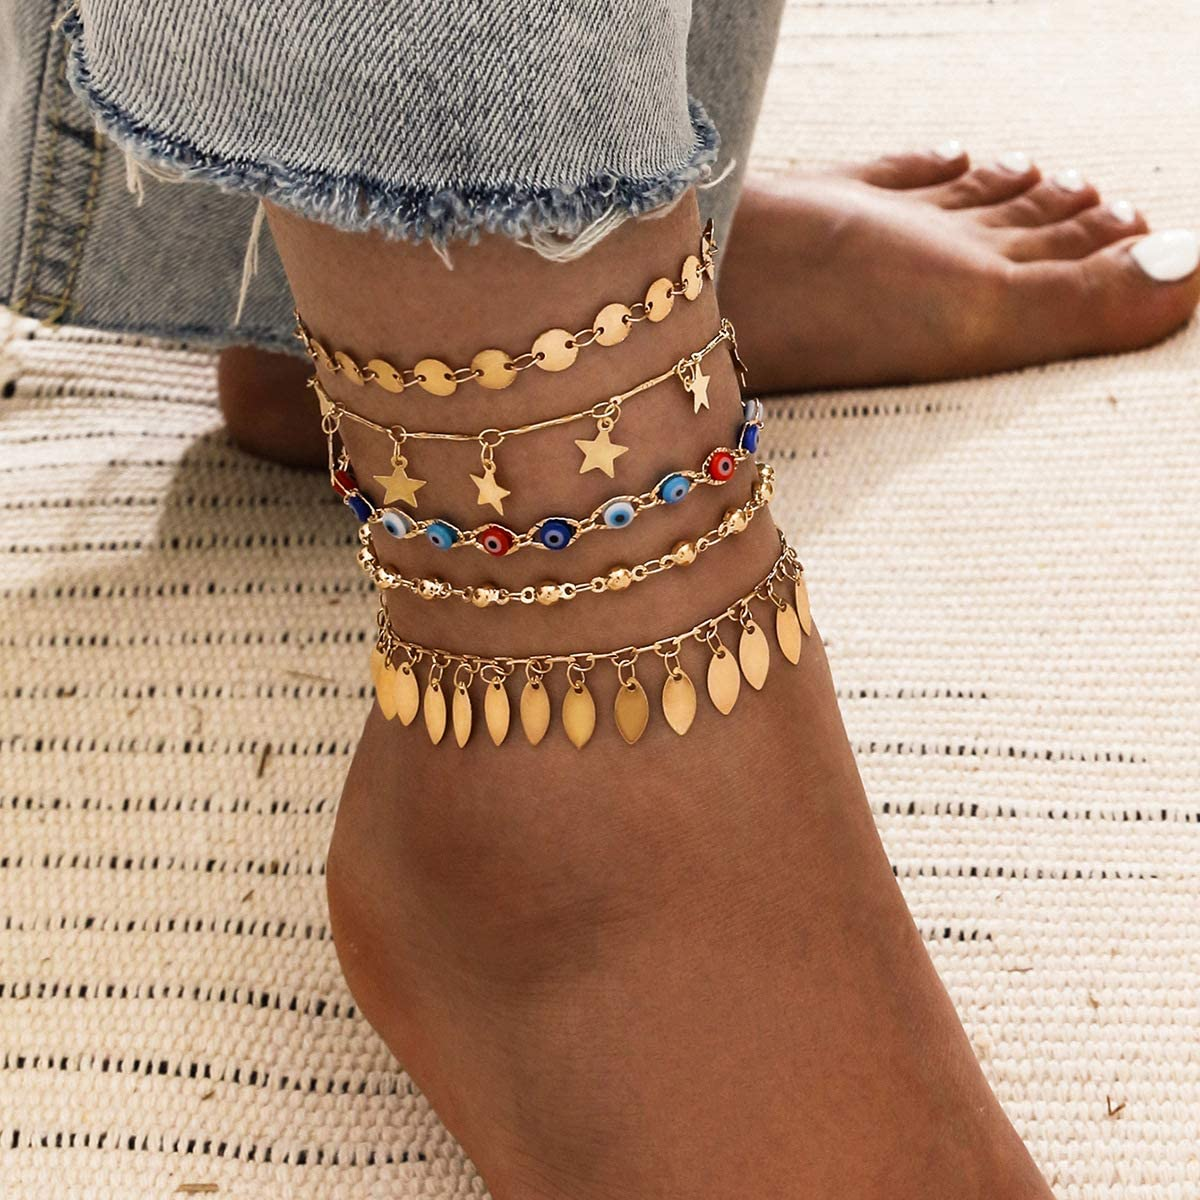 SOFTONES Charm Ankle Bracelets for Women Set Gold Jewelry Anklet for Women Girls Beach Anklets Gifts,Adjustable Size